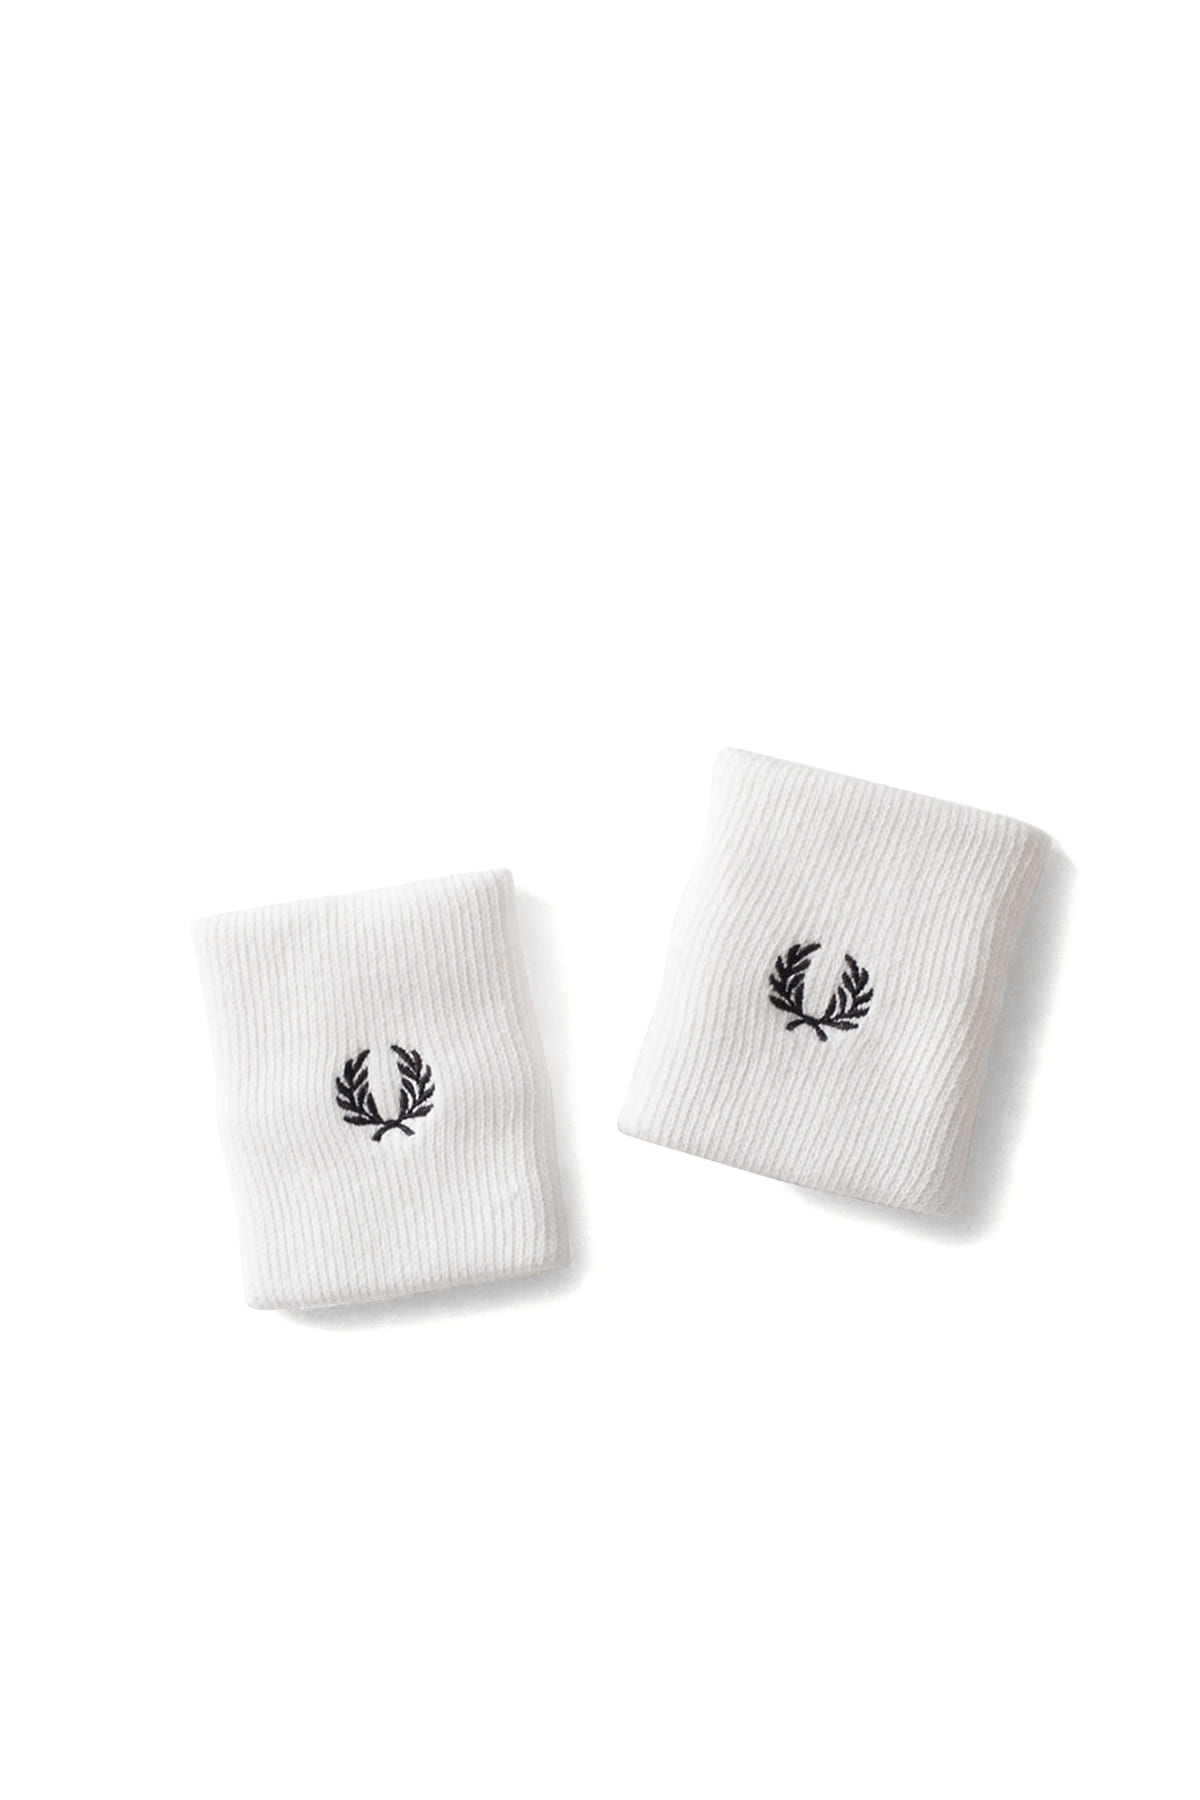 FRED PERRY : Ribbed Sweatband (Snow White)